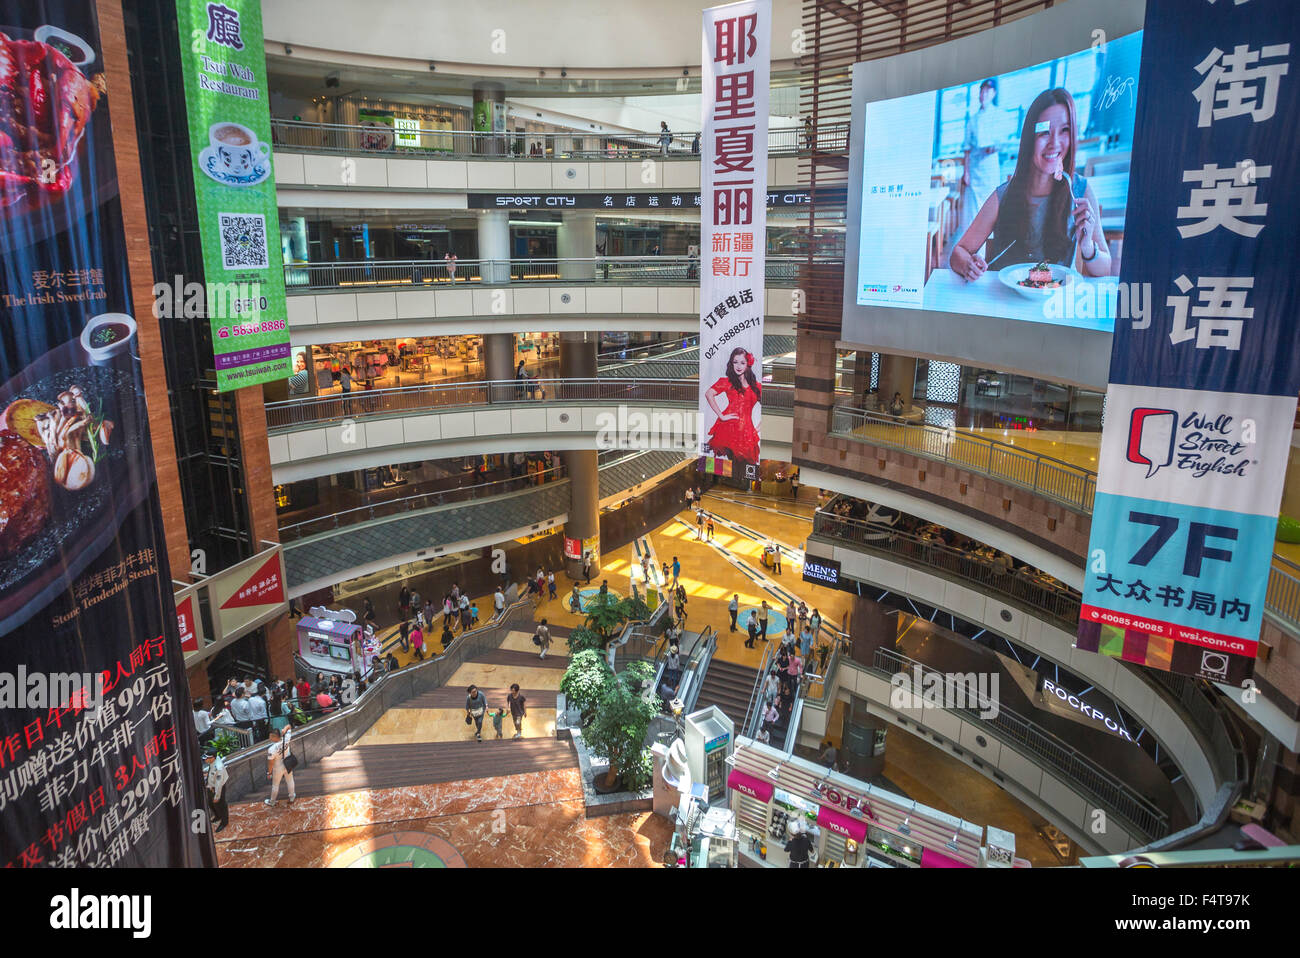 China, Shanghai City, Shopping Mall at Lujiazui Pudong district - Stock Image